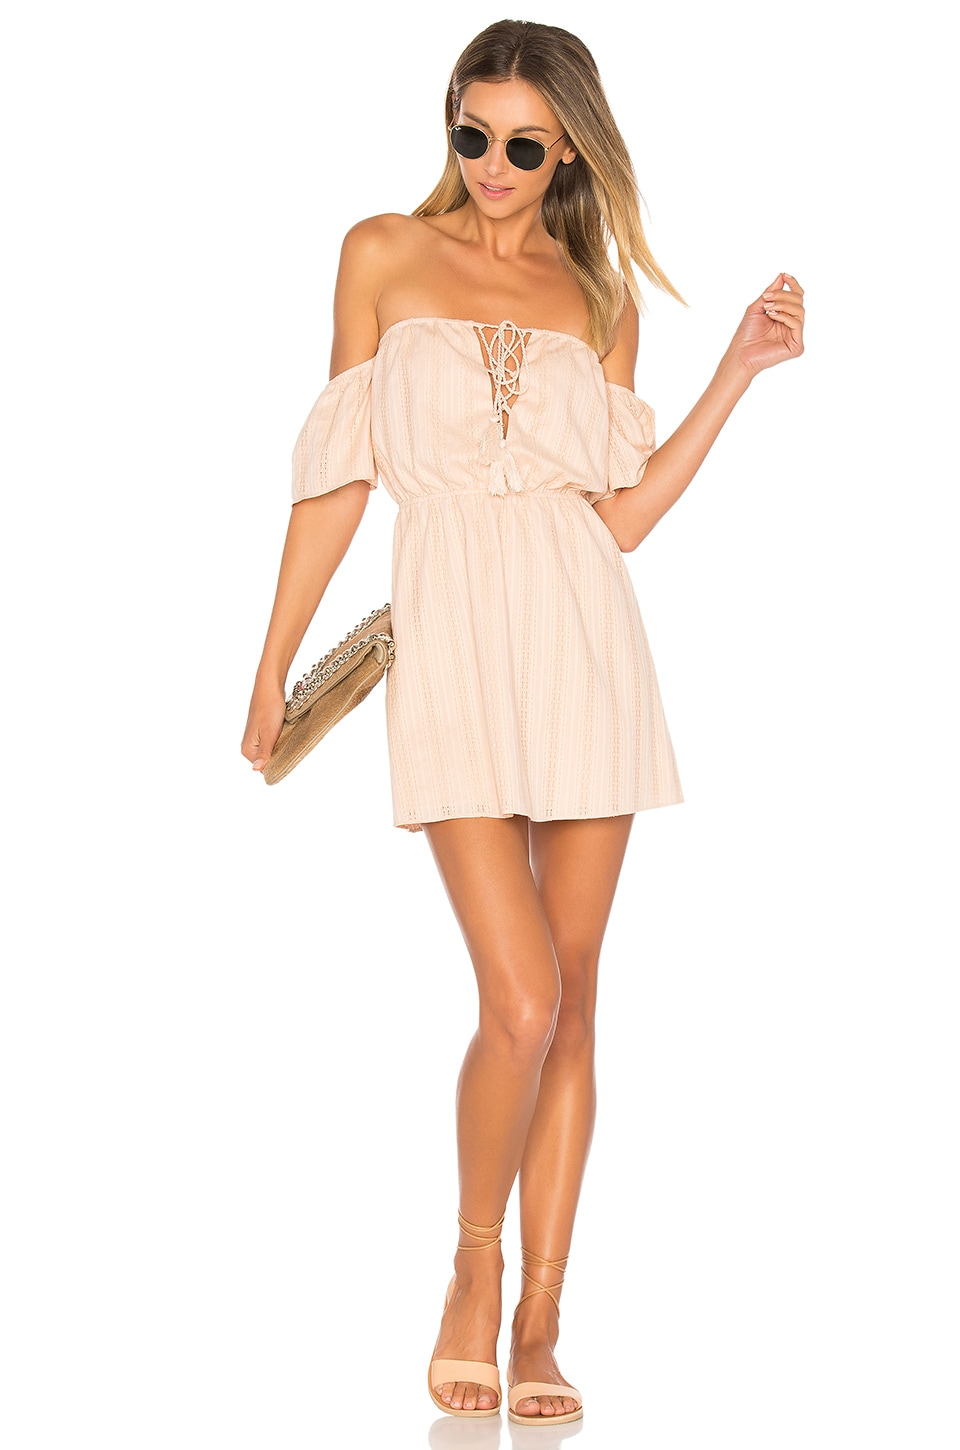 ale by alessandra x REVOLVE Gabriela Mini Dress in Pink Champagne